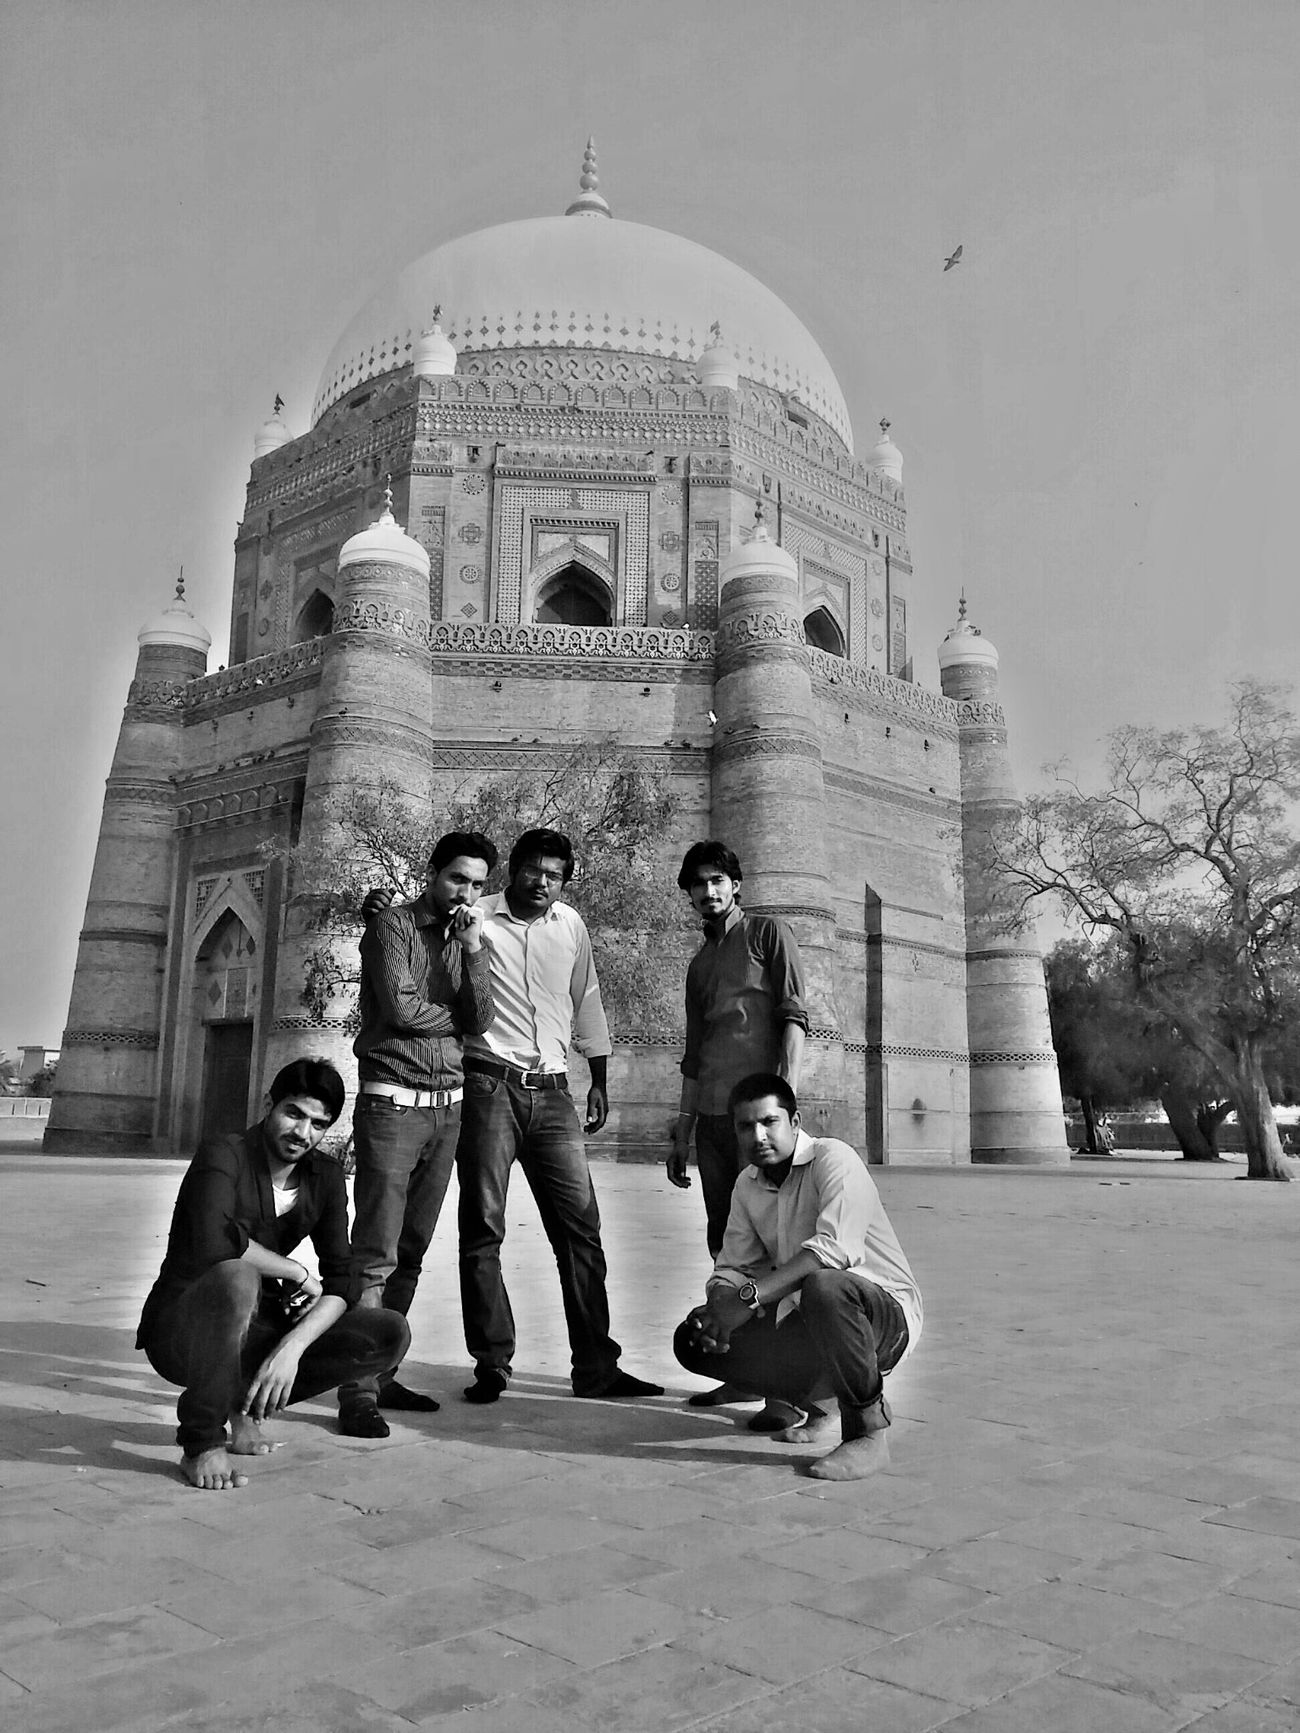 Shrine Of Hazrat Bahauddin Zakariya Multan Oldest City Of Asia Me With Friends Hot Day Pigeons On The Top Showcase April